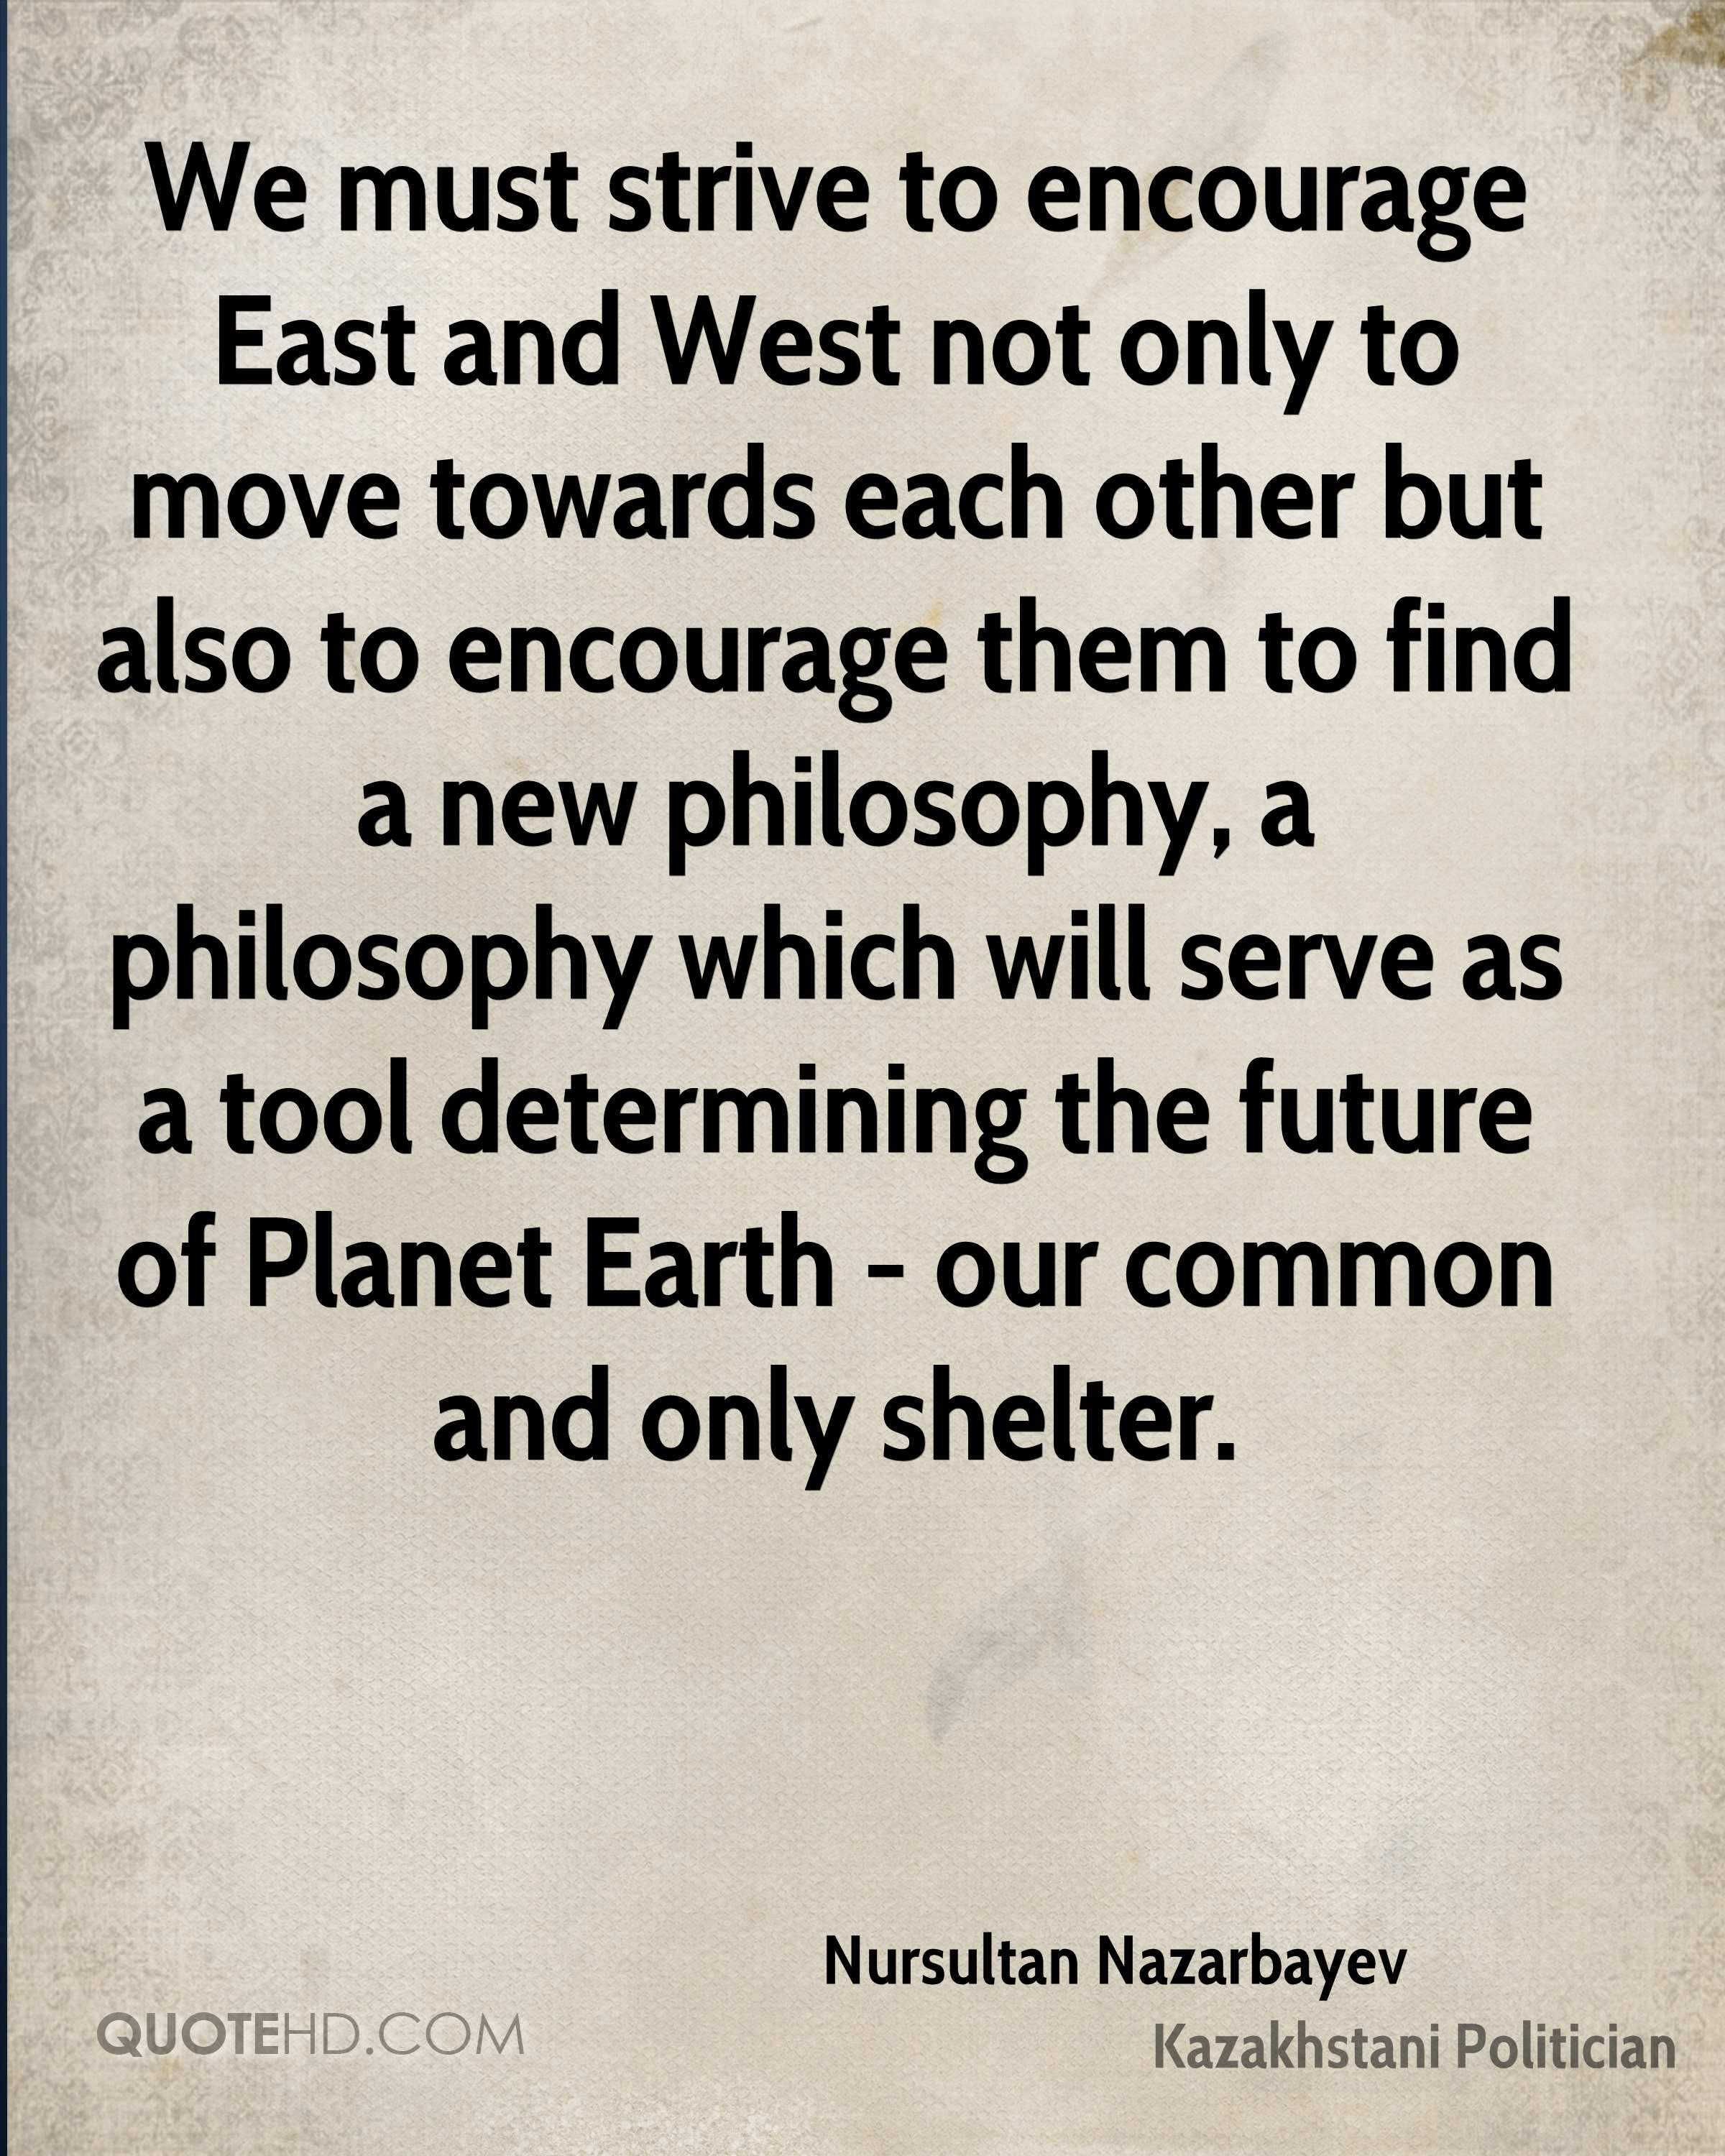 We must strive to encourage East and West not only to move towards each other but also to encourage them to find a new philosophy, a philosophy which will serve as a tool determining the future of Planet Earth - our common and only shelter.